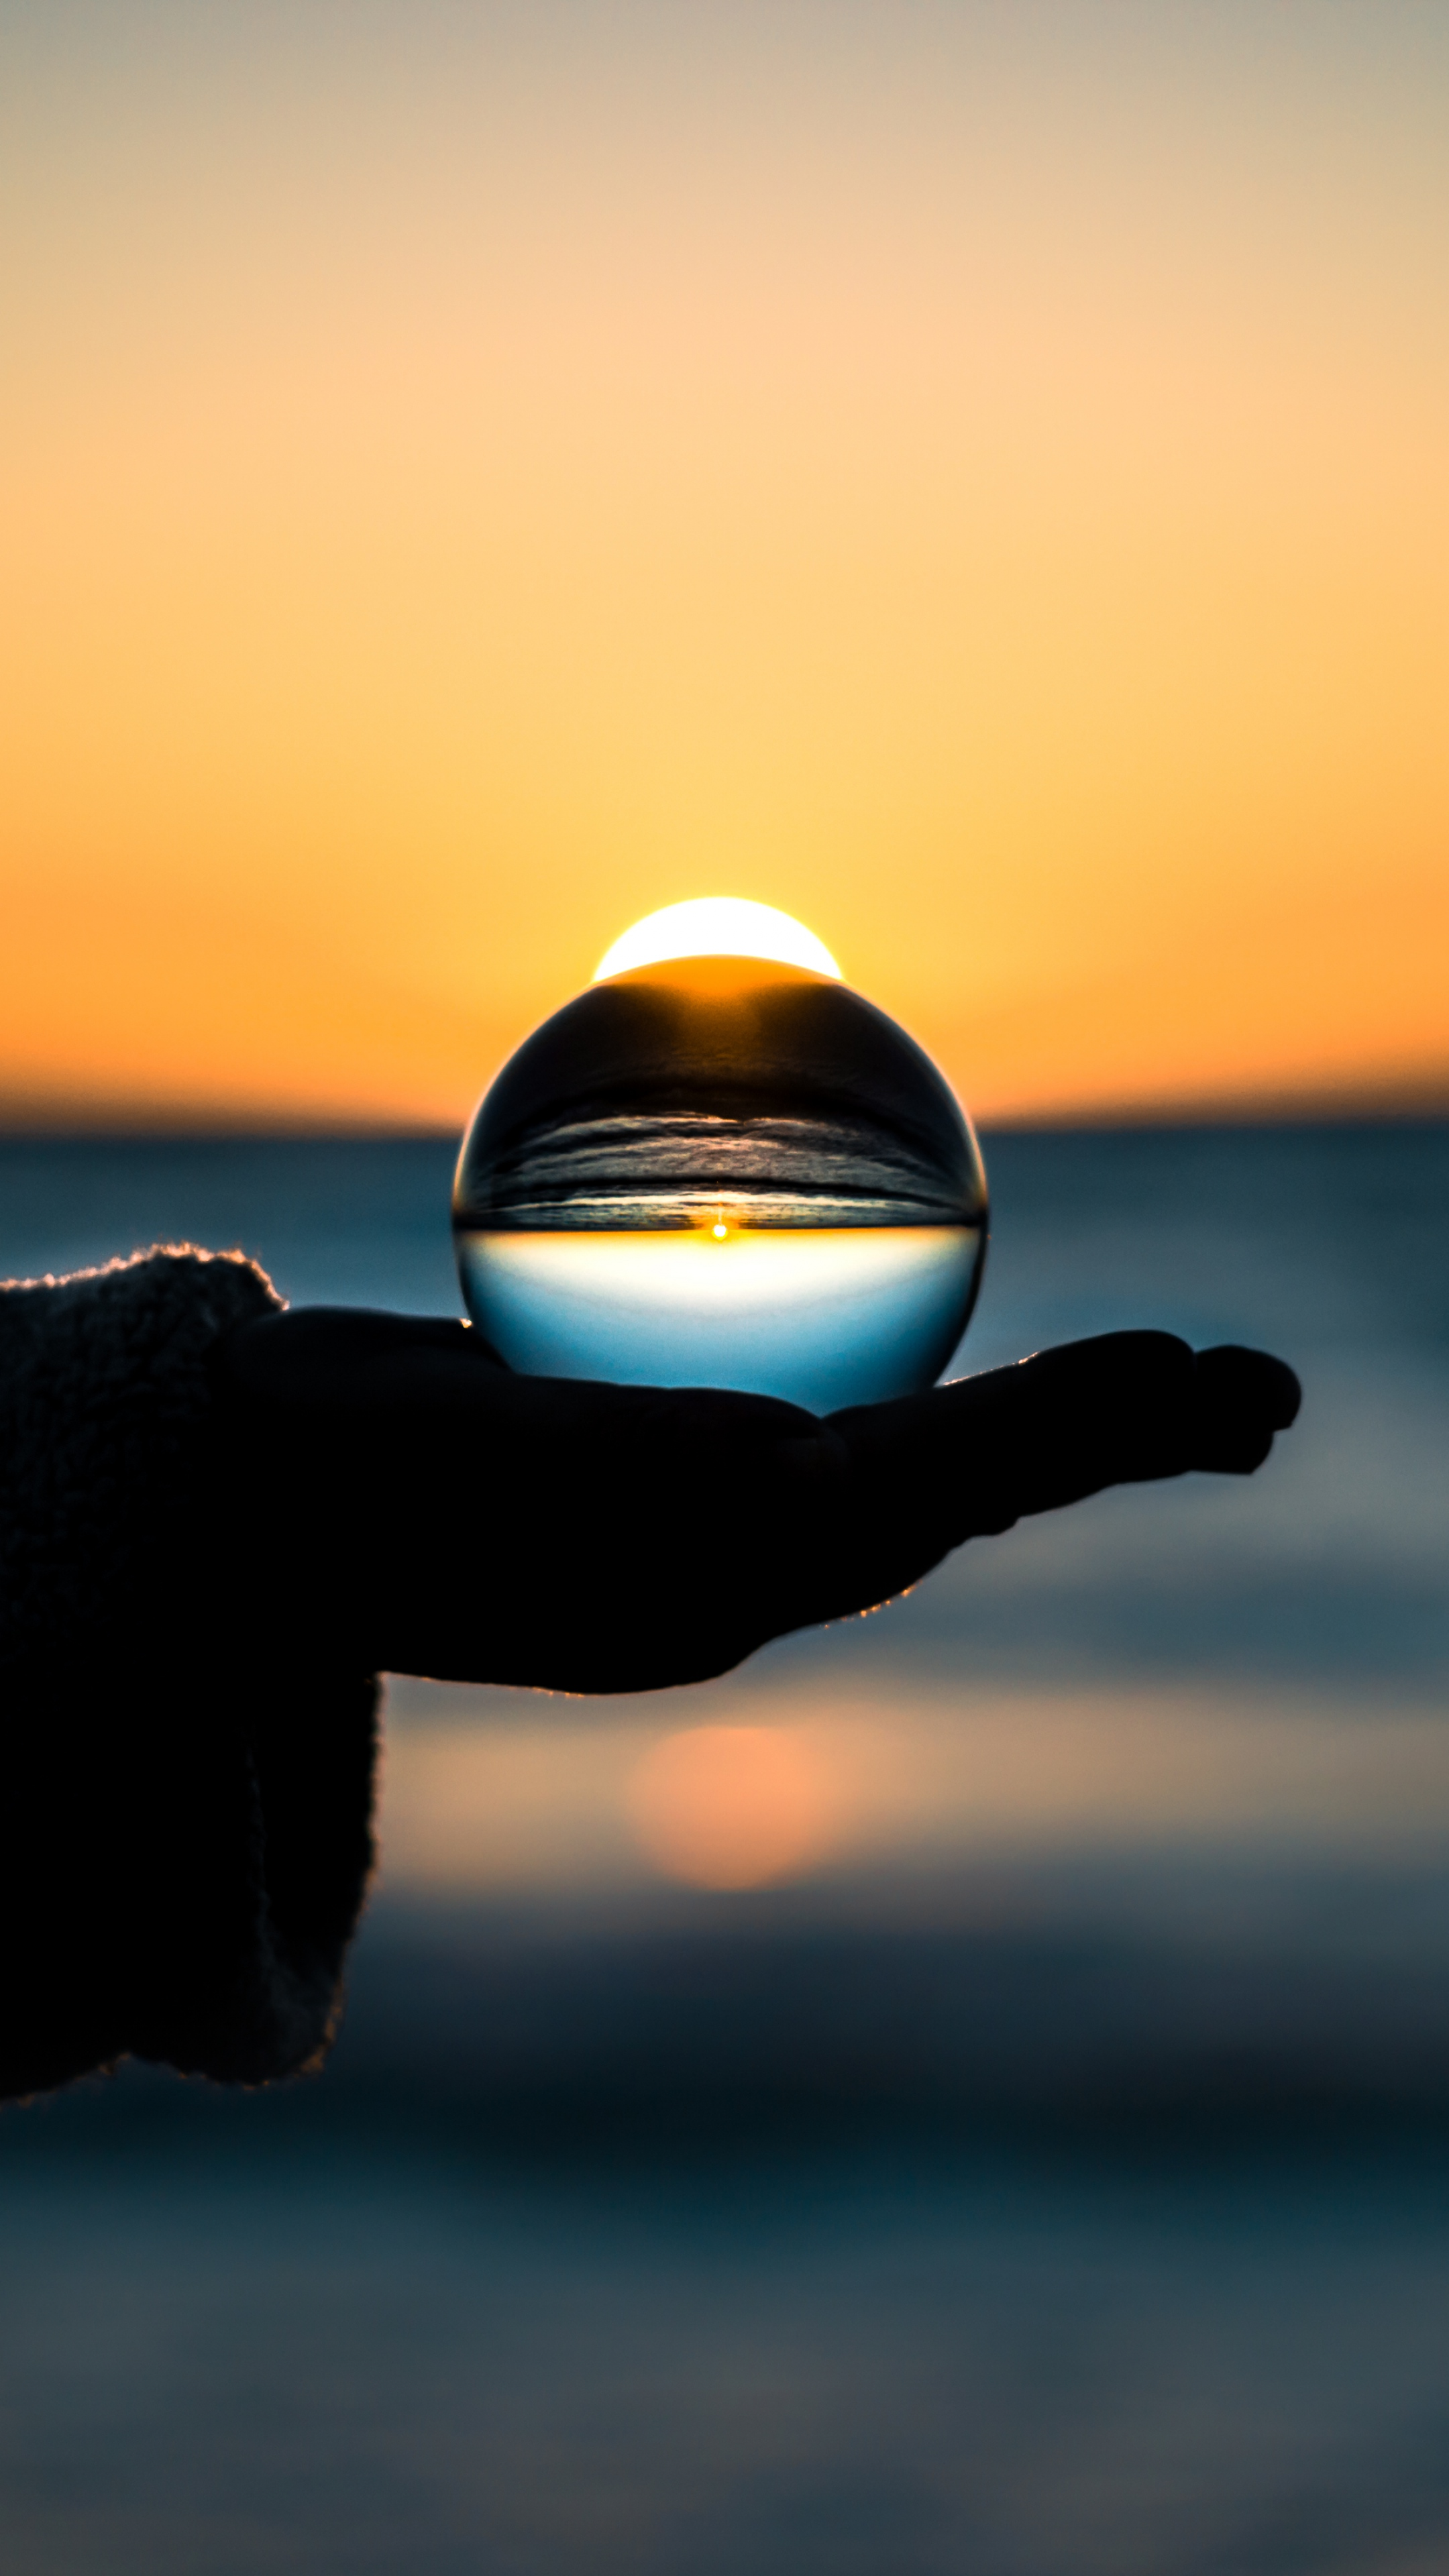 4K Glass Ball Wallpapers High Quality   Download Free